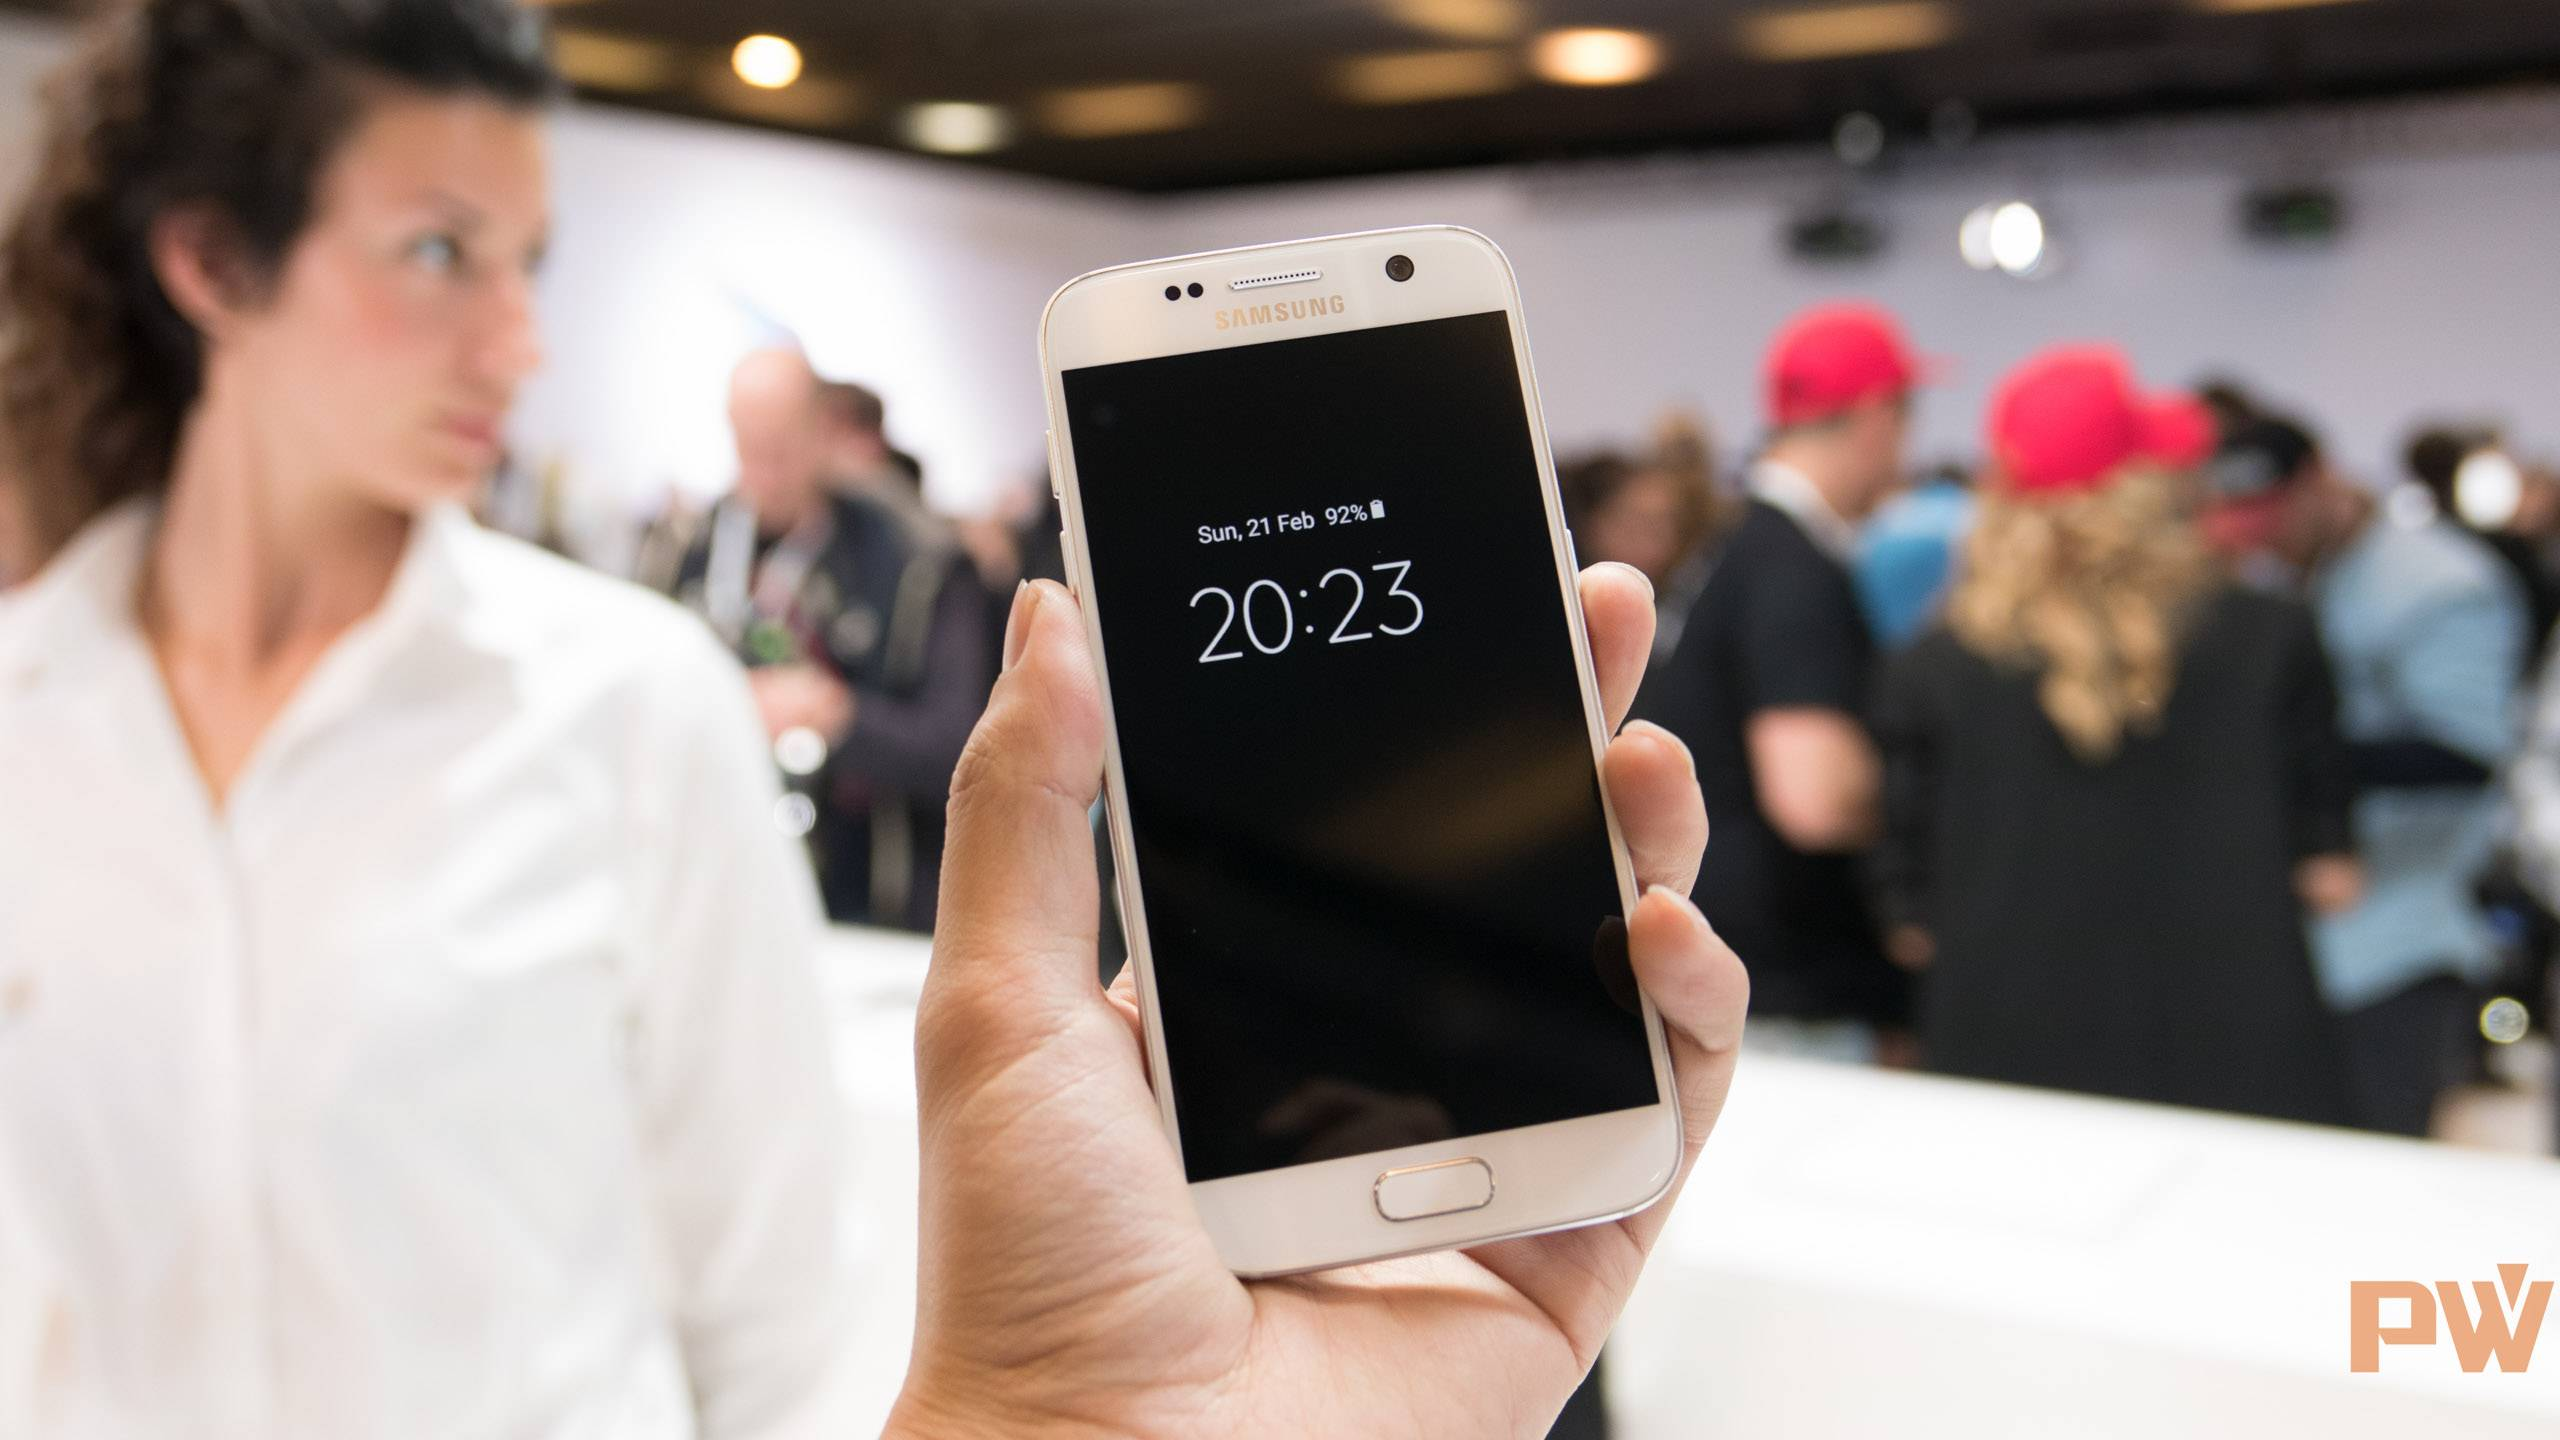 Samsung Galaxy S7 S7 edge MWC 2016 PingWest Photo By Hao Ying-42